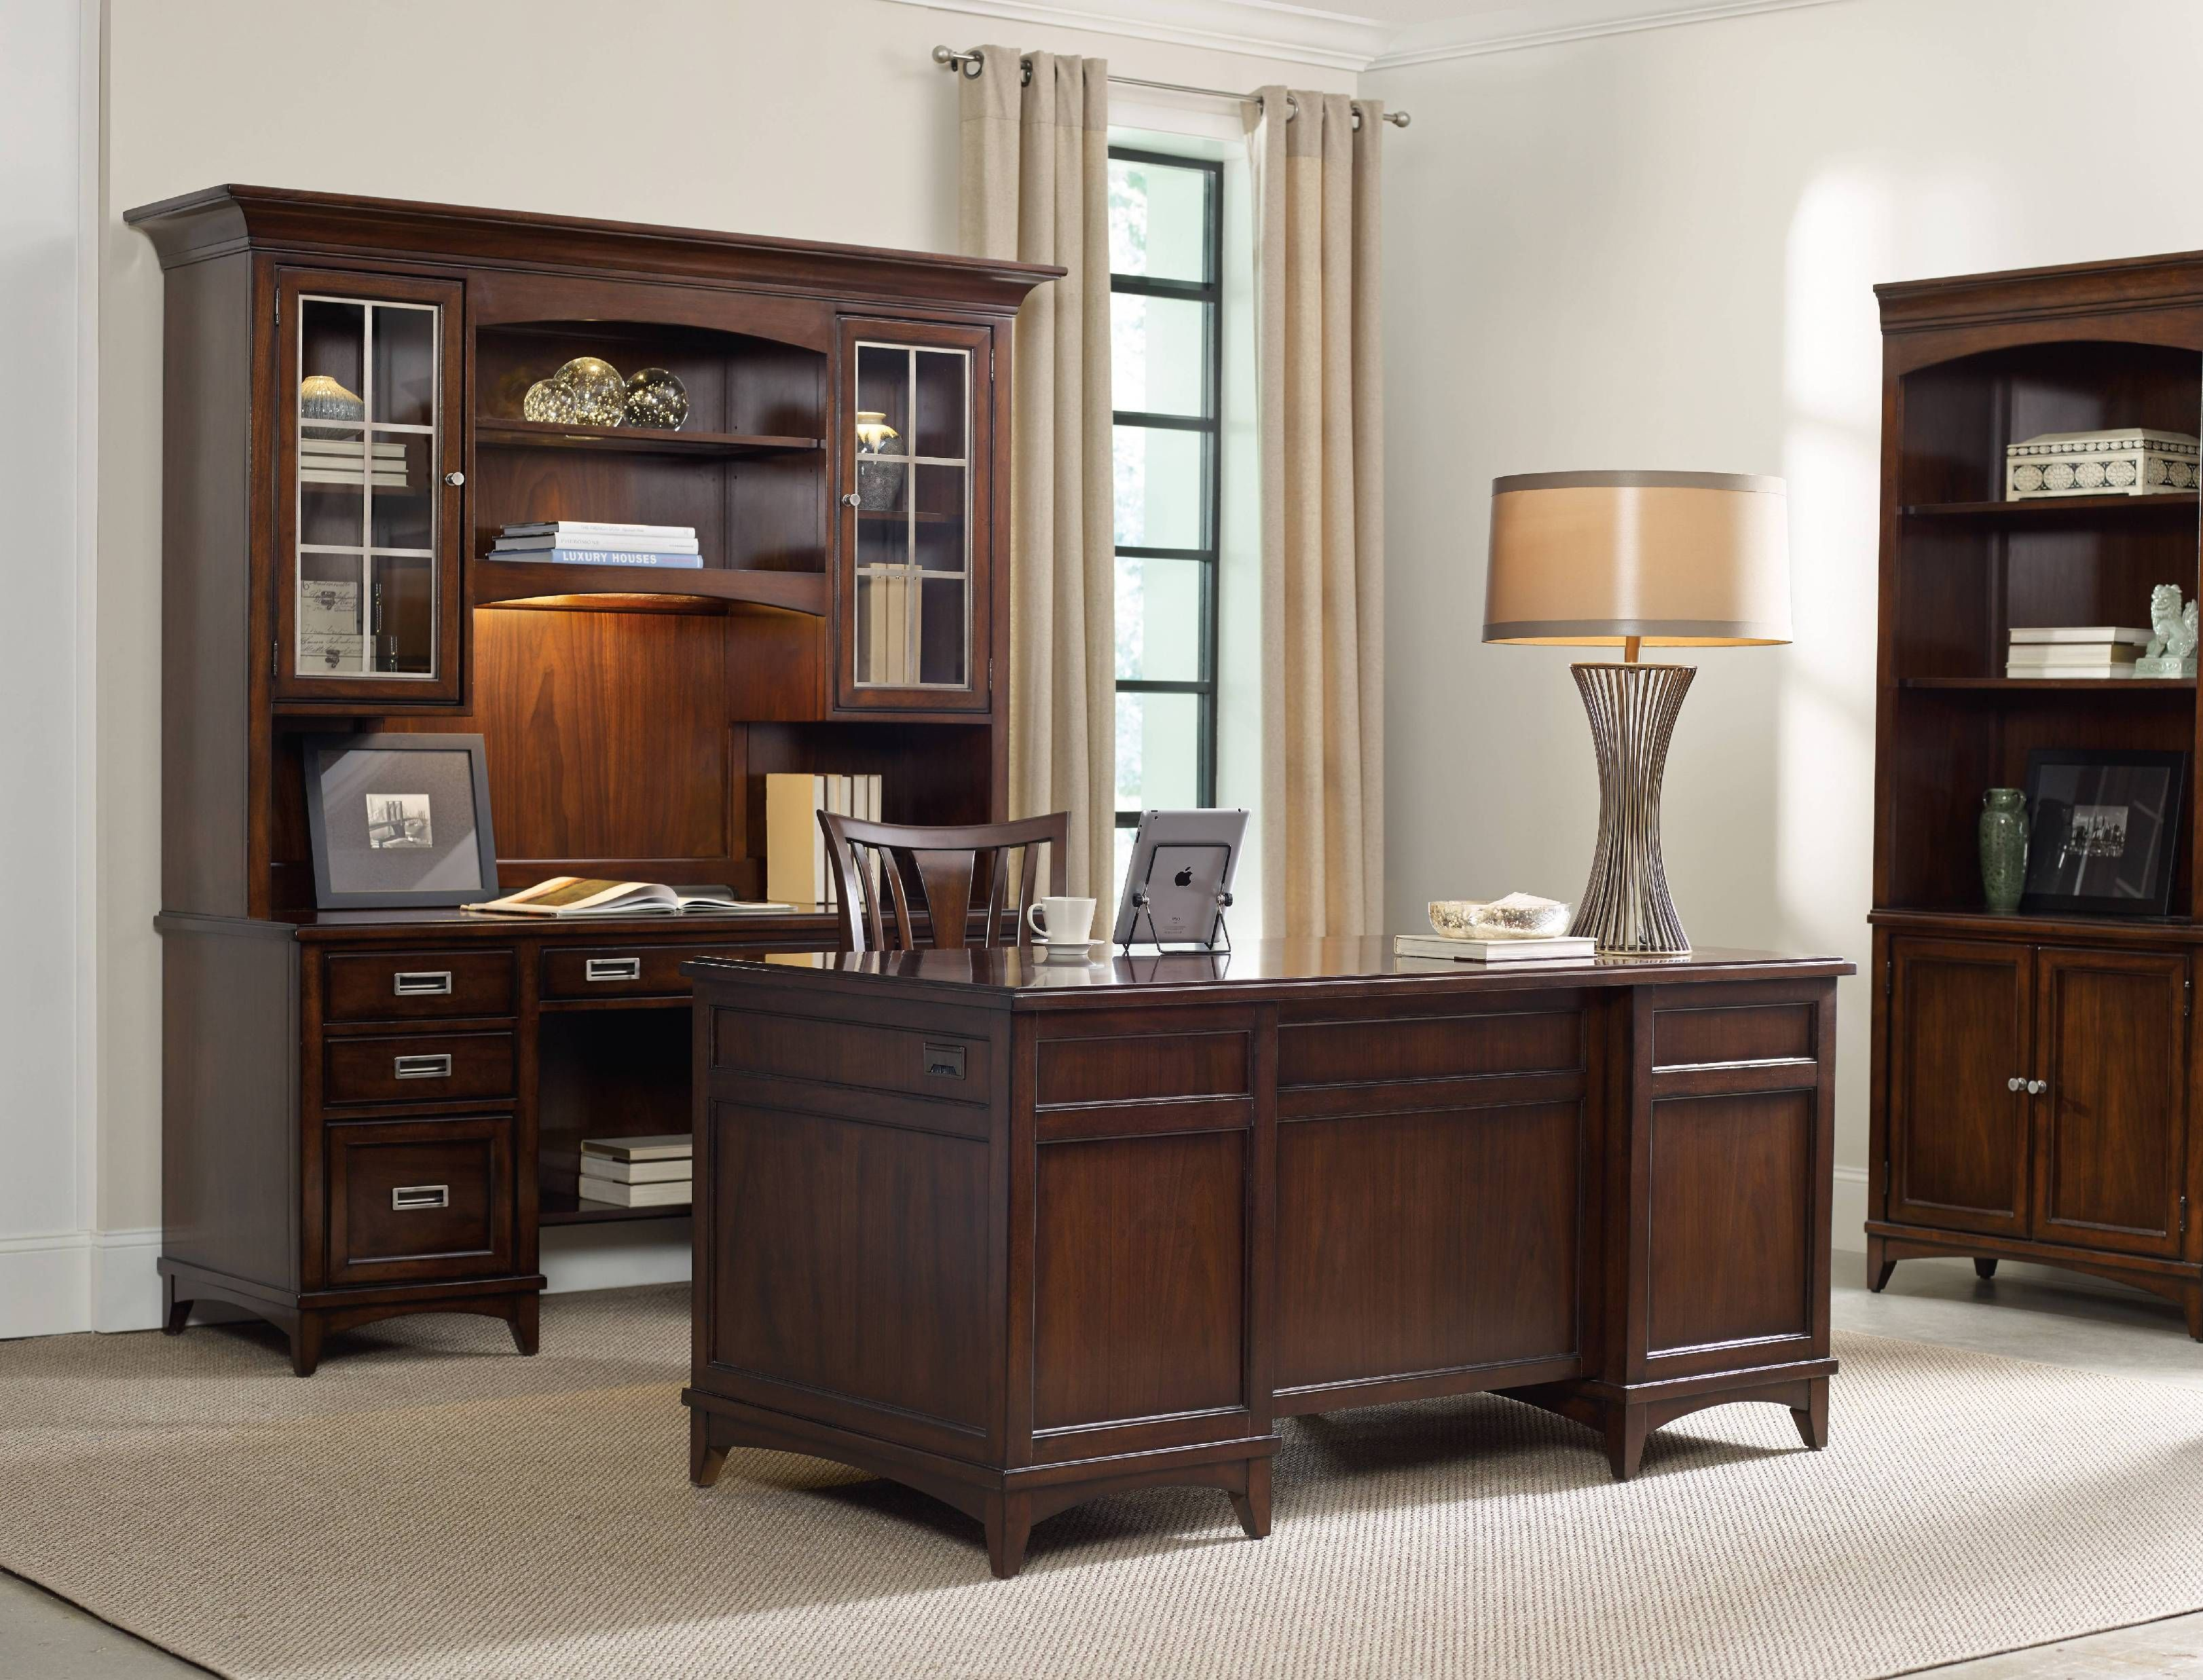 Hooker Furniture Home Office Impressive Hooker Furniture Home Office Latitude Executive Desk 516710562 . Design Ideas